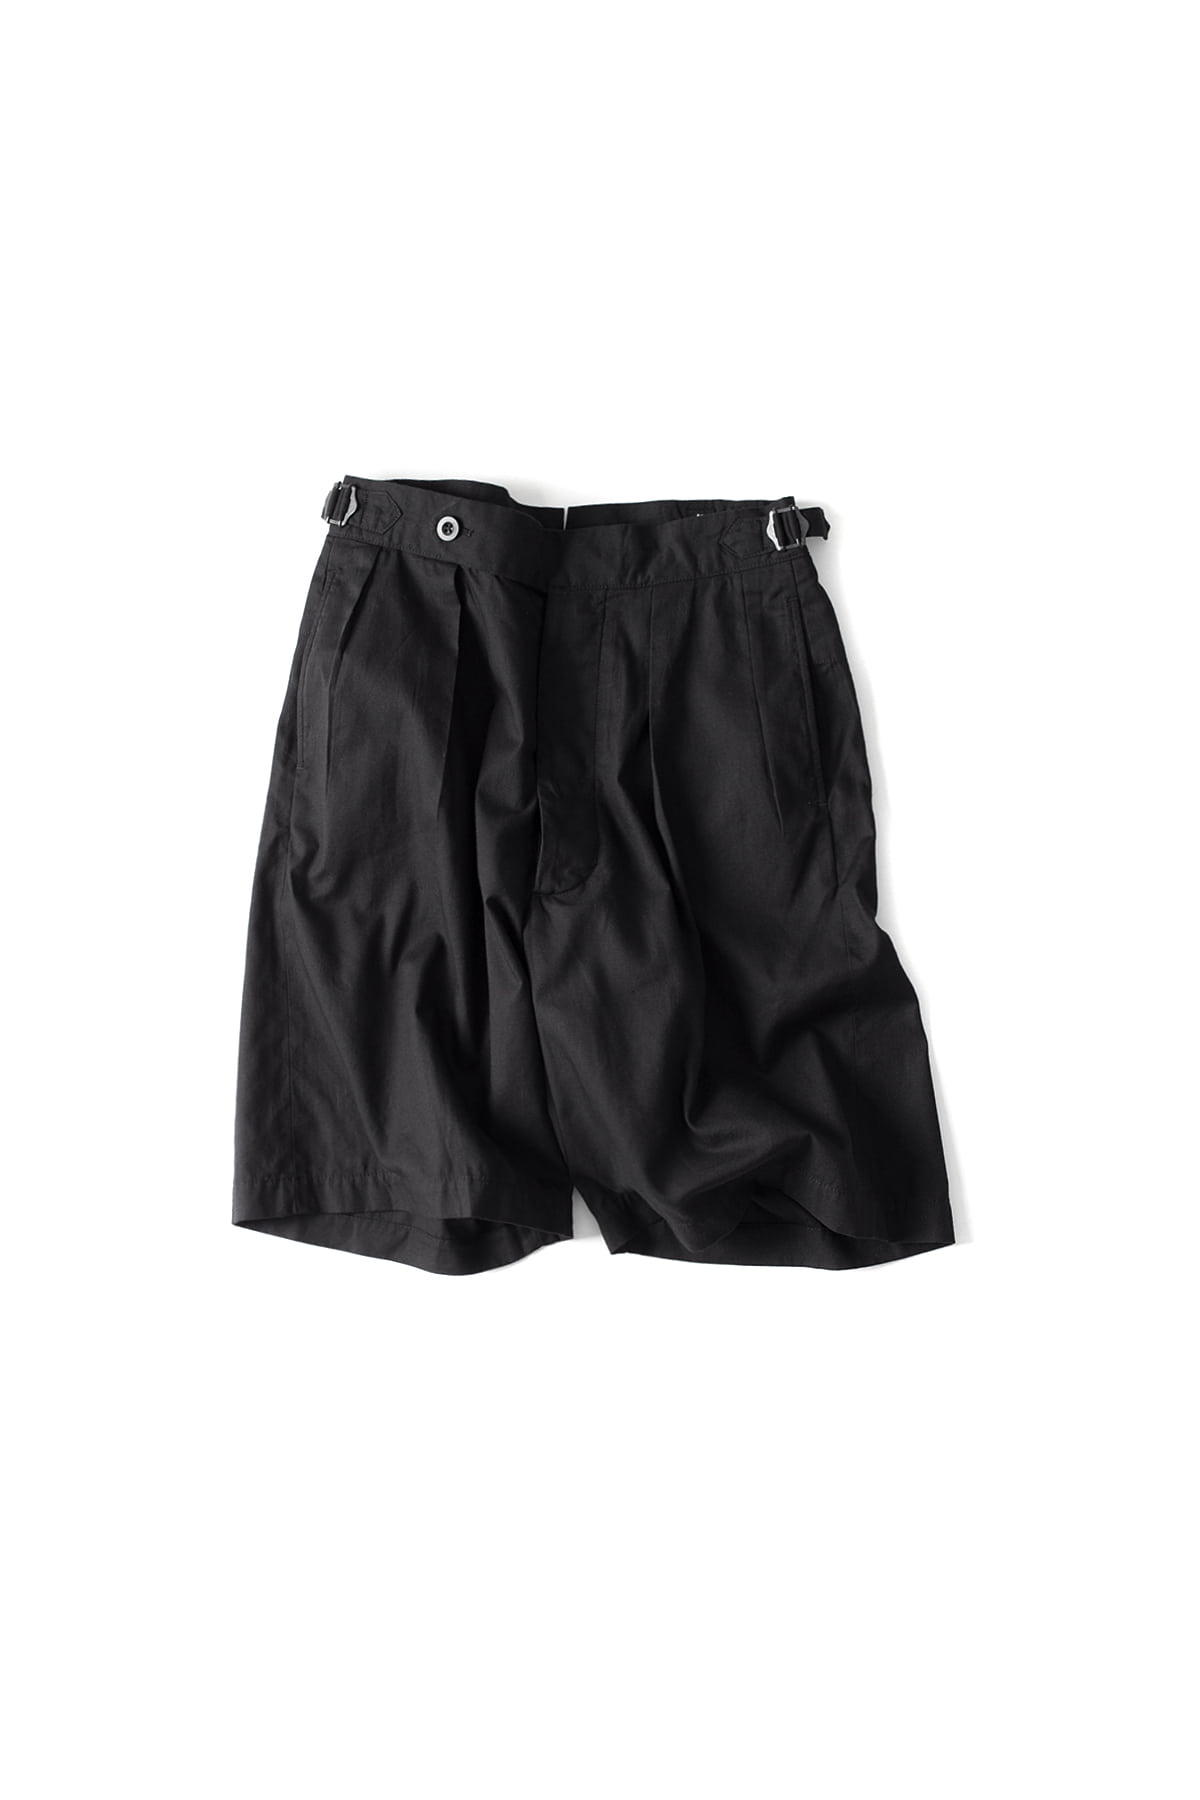 Kaptain Sunshine : Riviera Short Pants (Black)